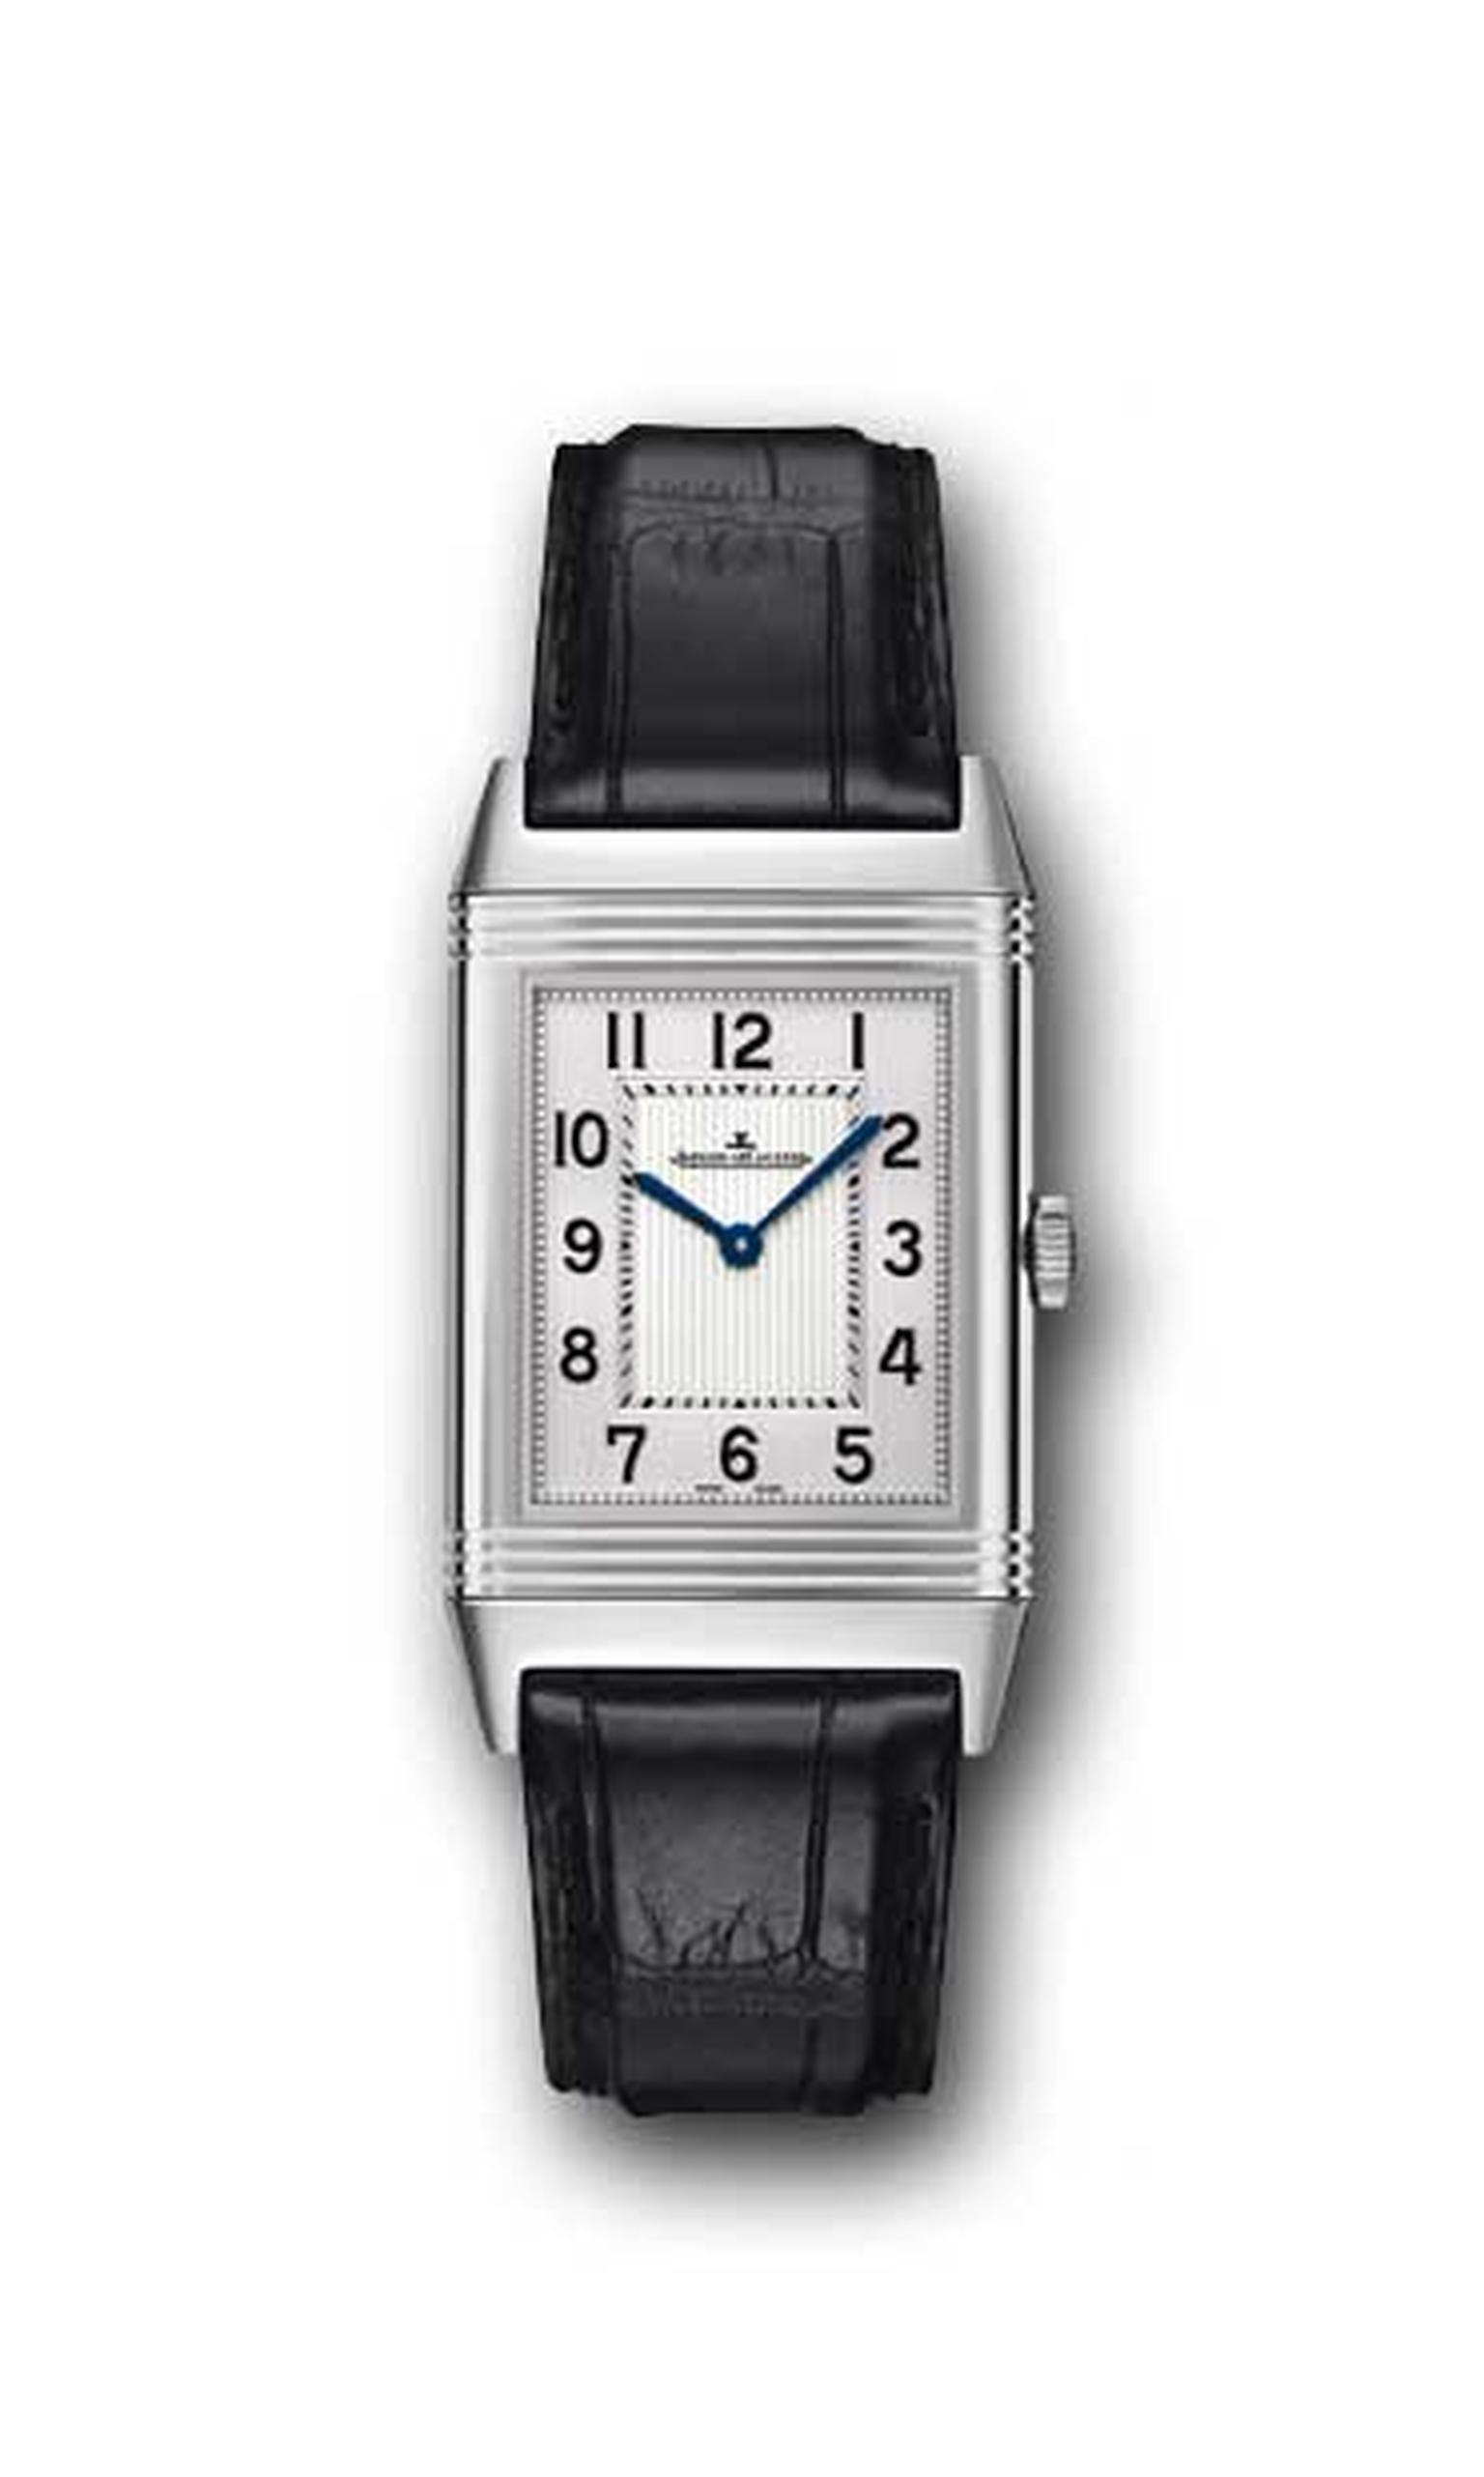 A request by British polo players in India to find a way to shield the glass on their watches from the blows of a mallet, led to an ingenious solution and a winning design. In 1931, Jaeger-LeCoultre filed for a patent for its reversible watch, a swivel-ba